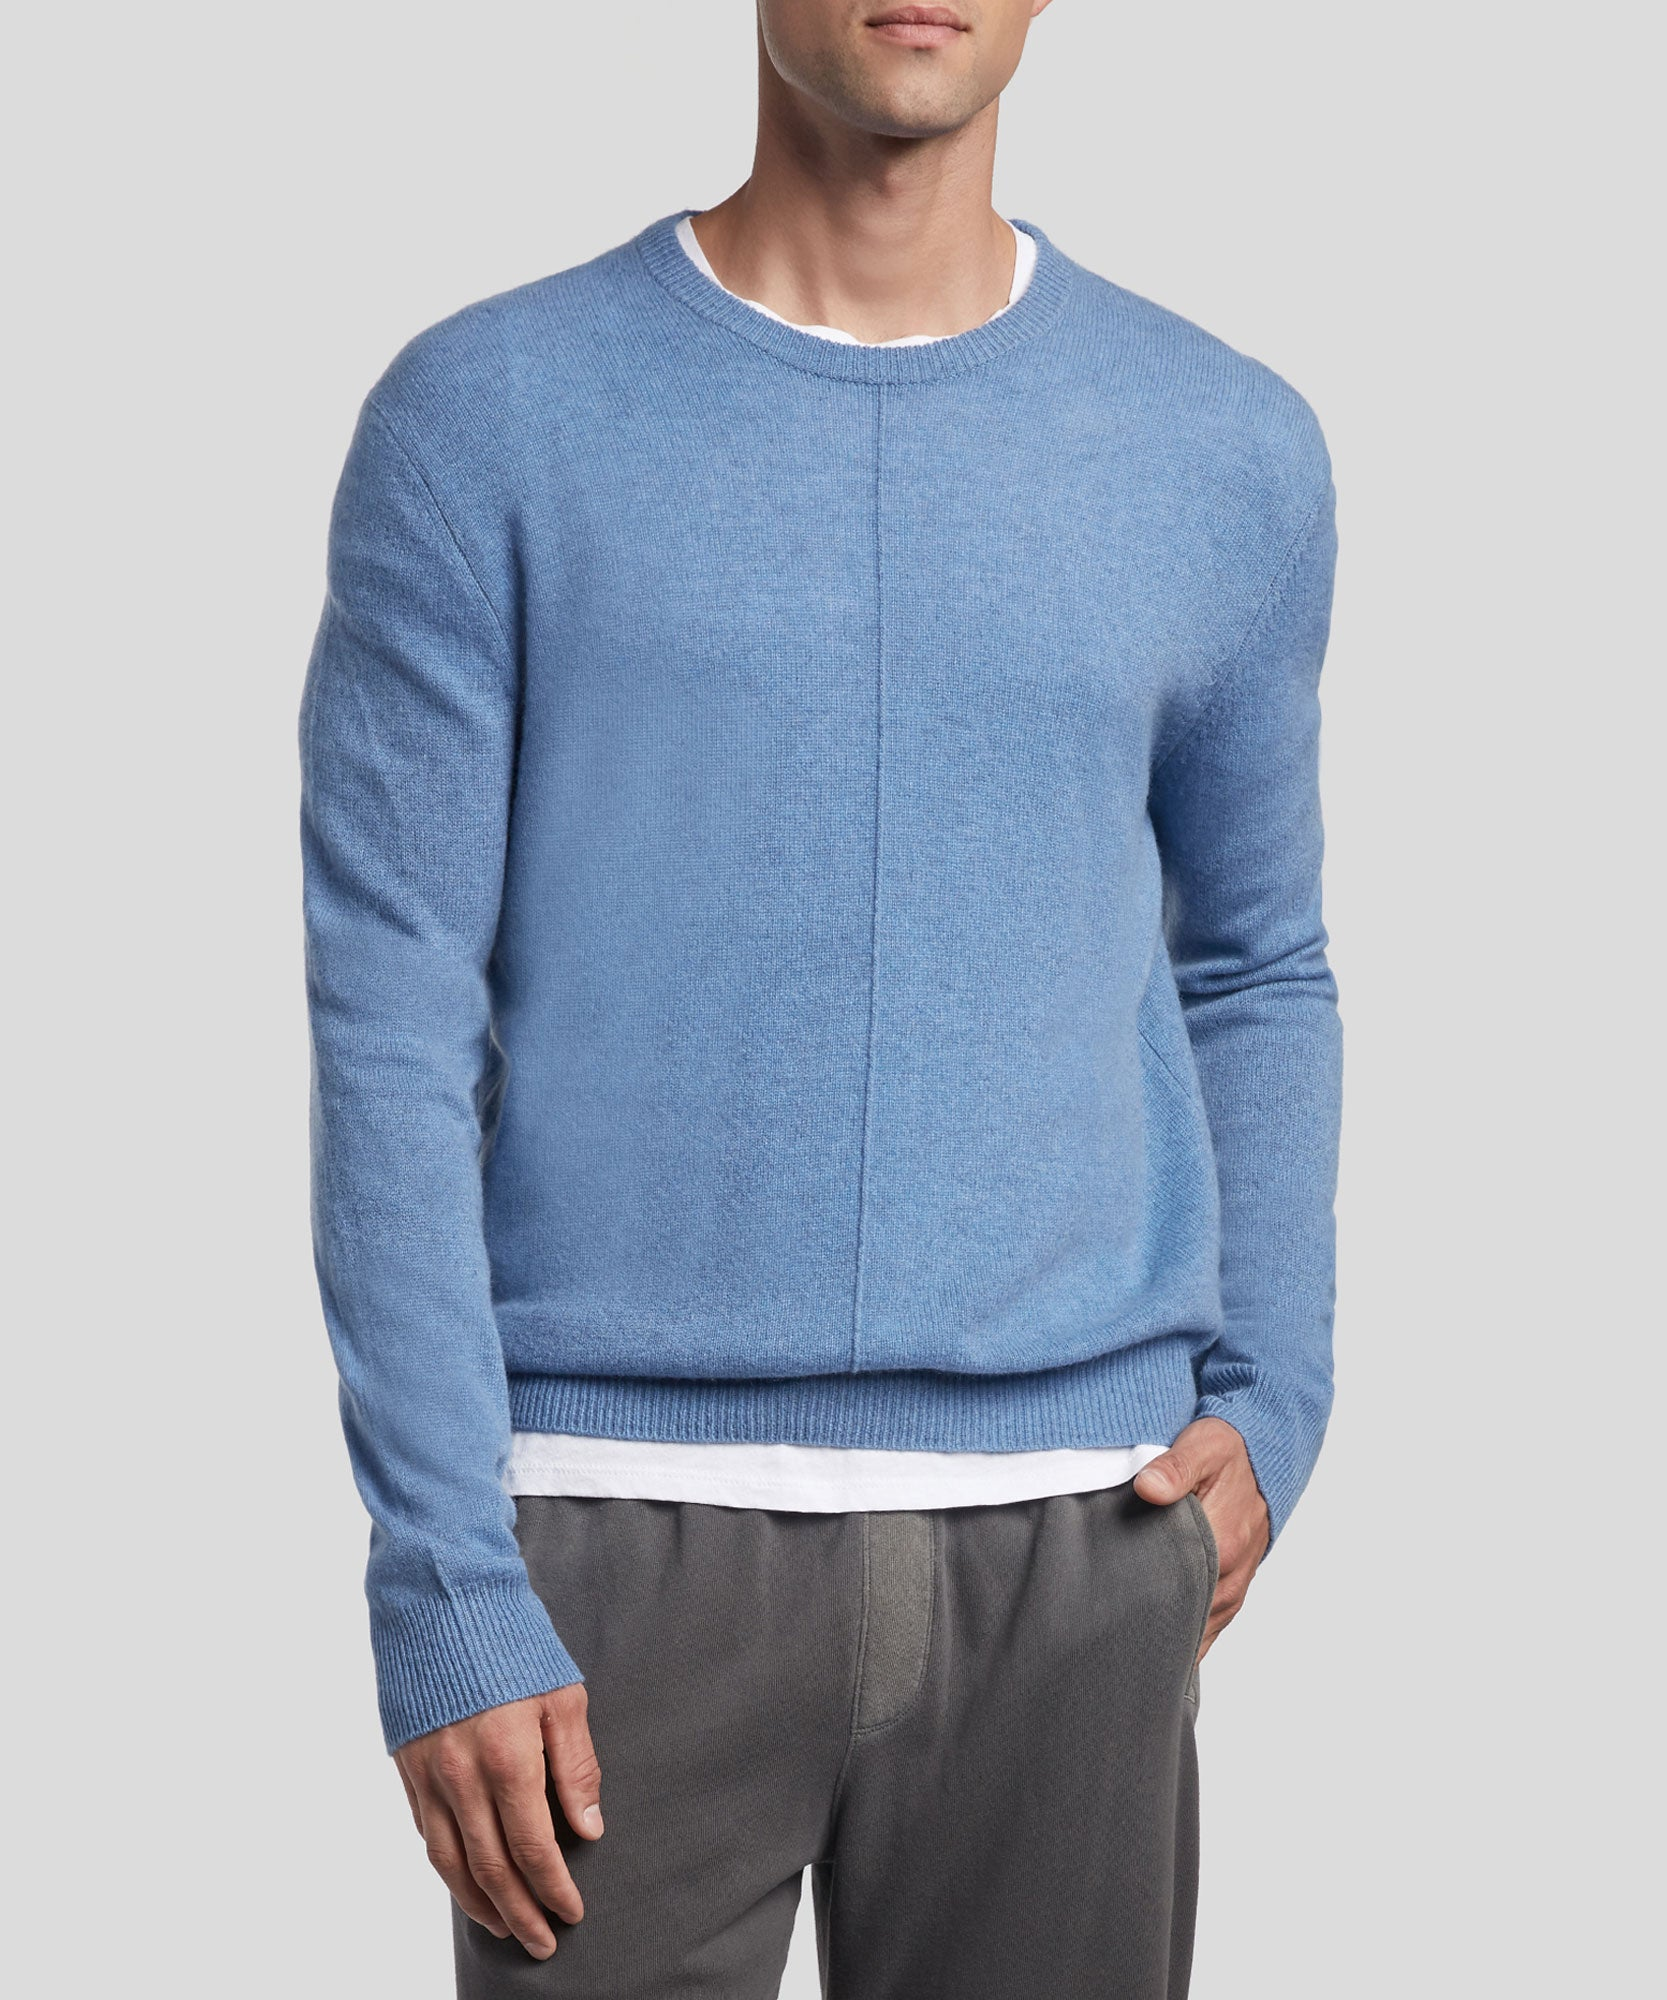 Moonlight Cashmere Exposed Seam Crew Neck Sweater - Men's Cashmere Sweater by ATM Anthony Thomas Melillo